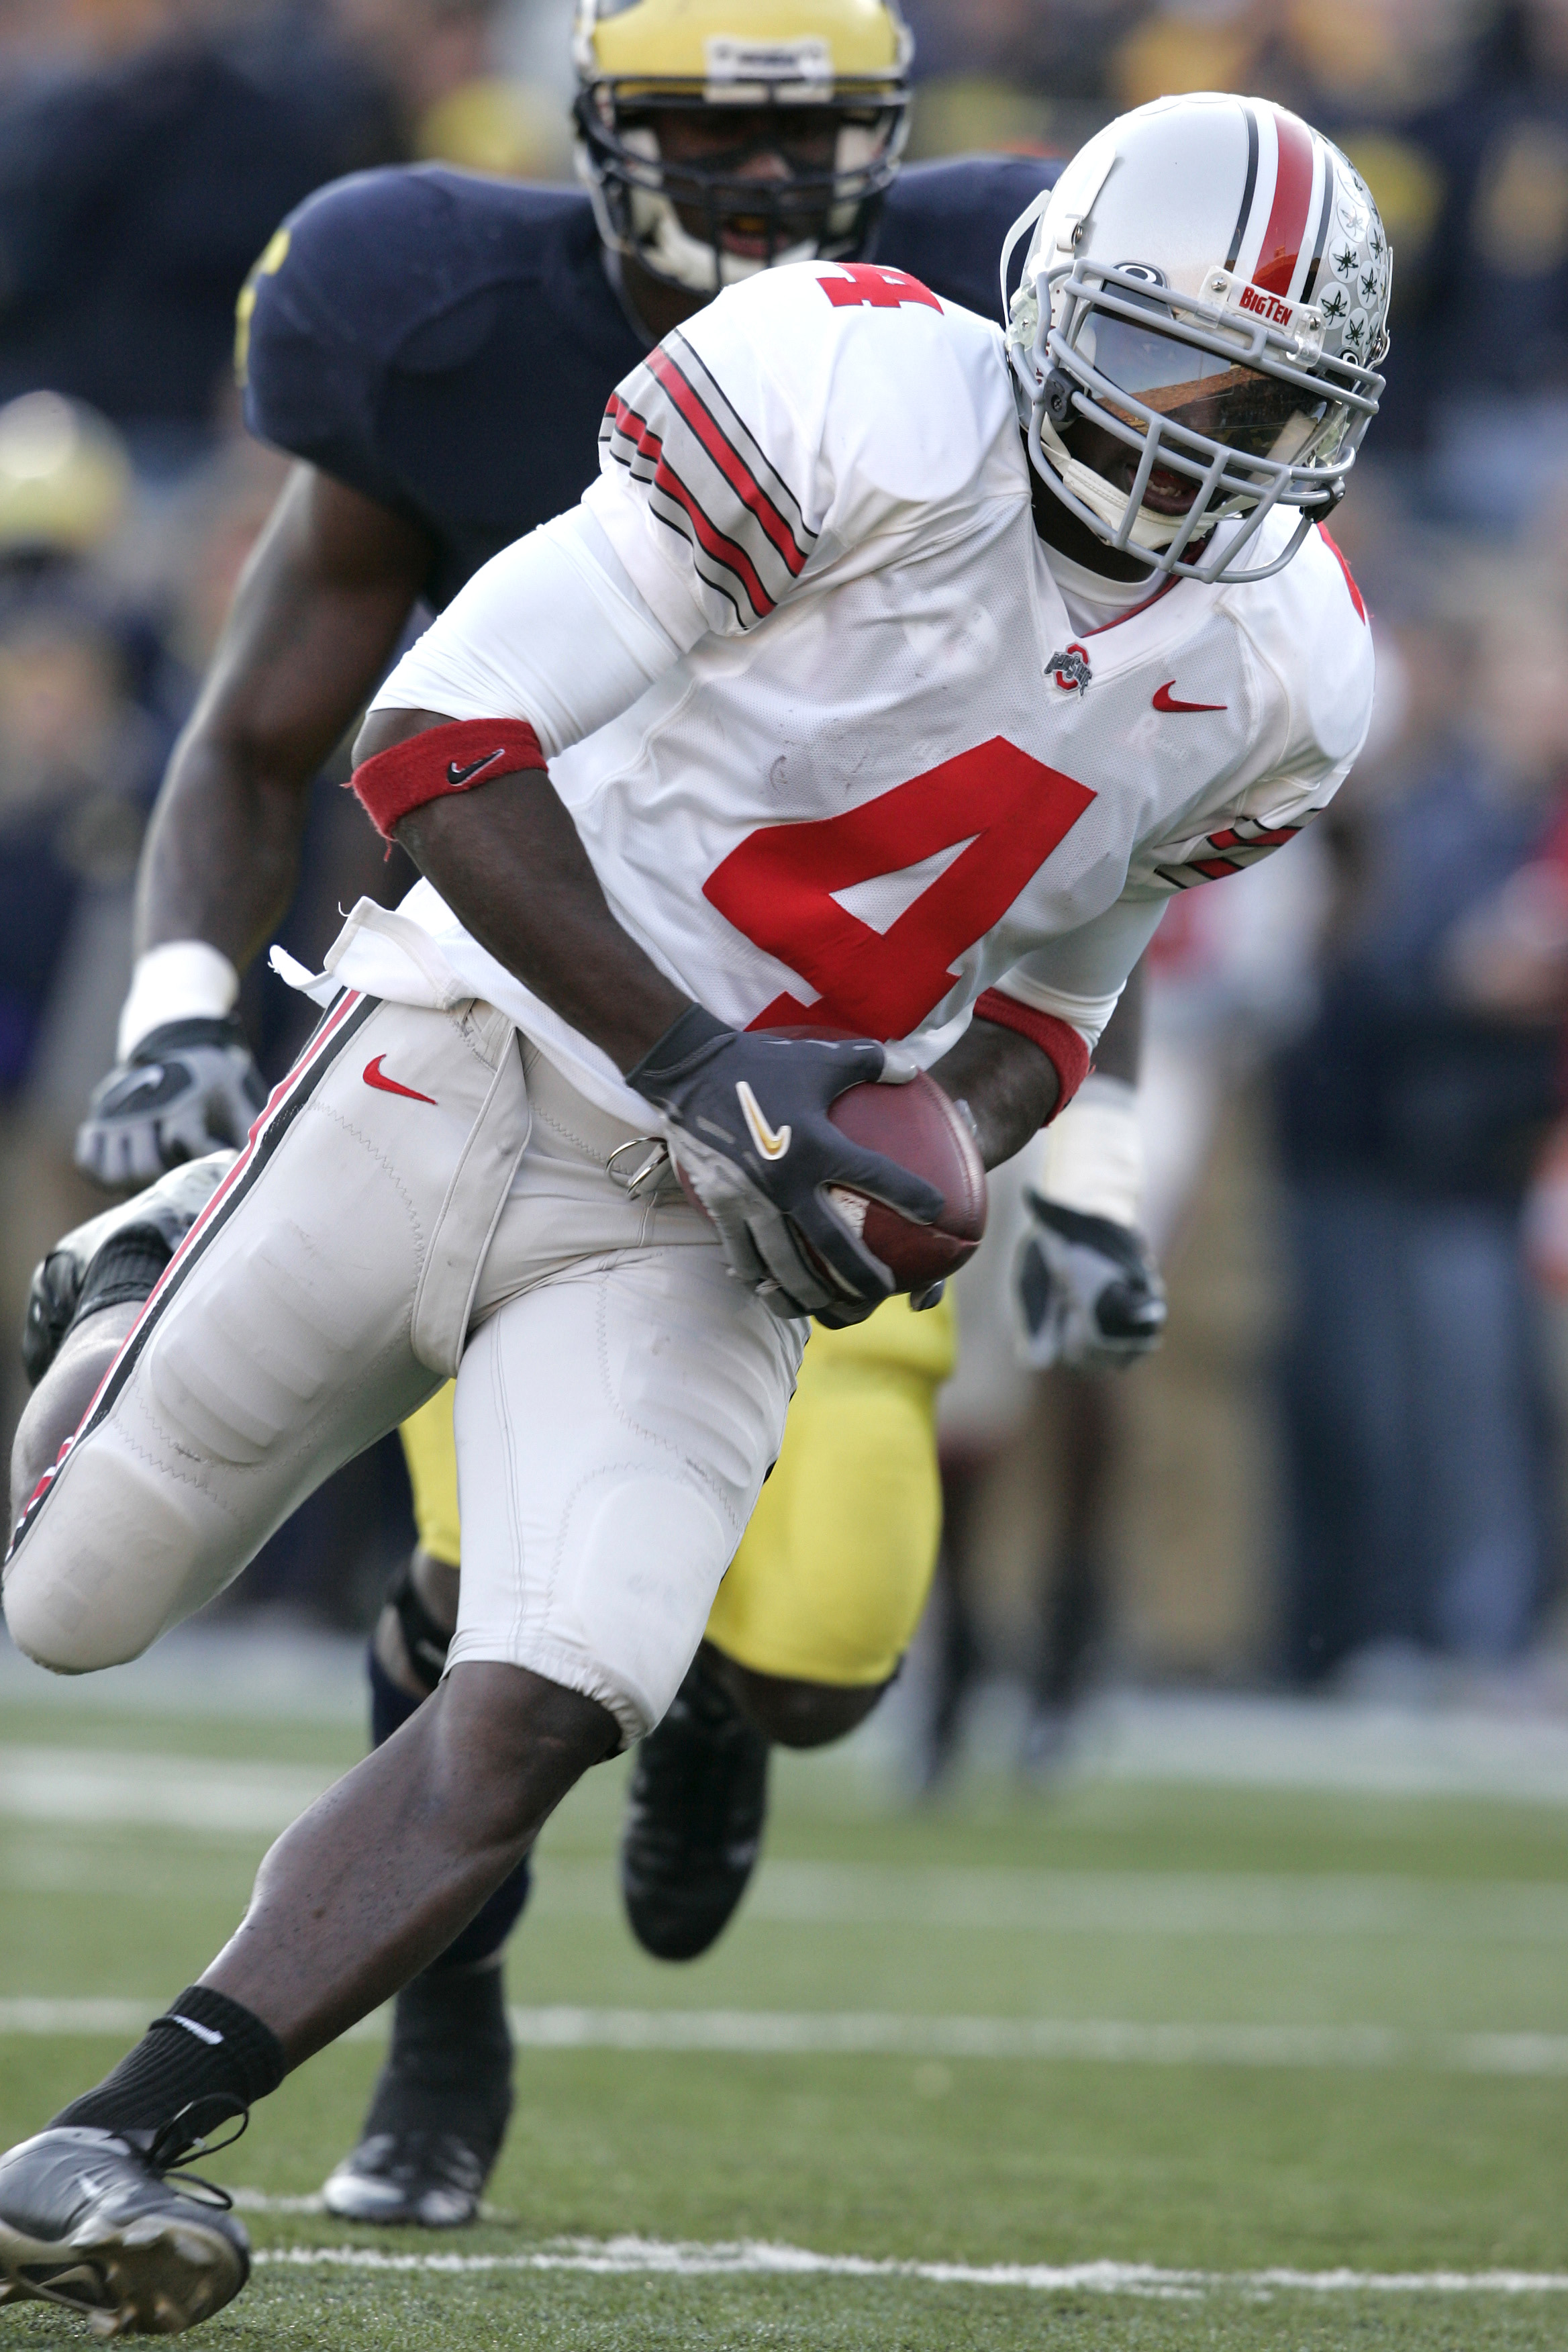 ANN ARBOR, MI - NOVEMBER 19:  Santonio Holmes #4 of Ohio State runs towards the end zone after a pass reception in the fourth quarter against Michigan on November 19, 2005 at Michigan Stadium in Ann Arbor, Michigan. The Buckeyes defeated the Wolverines 25